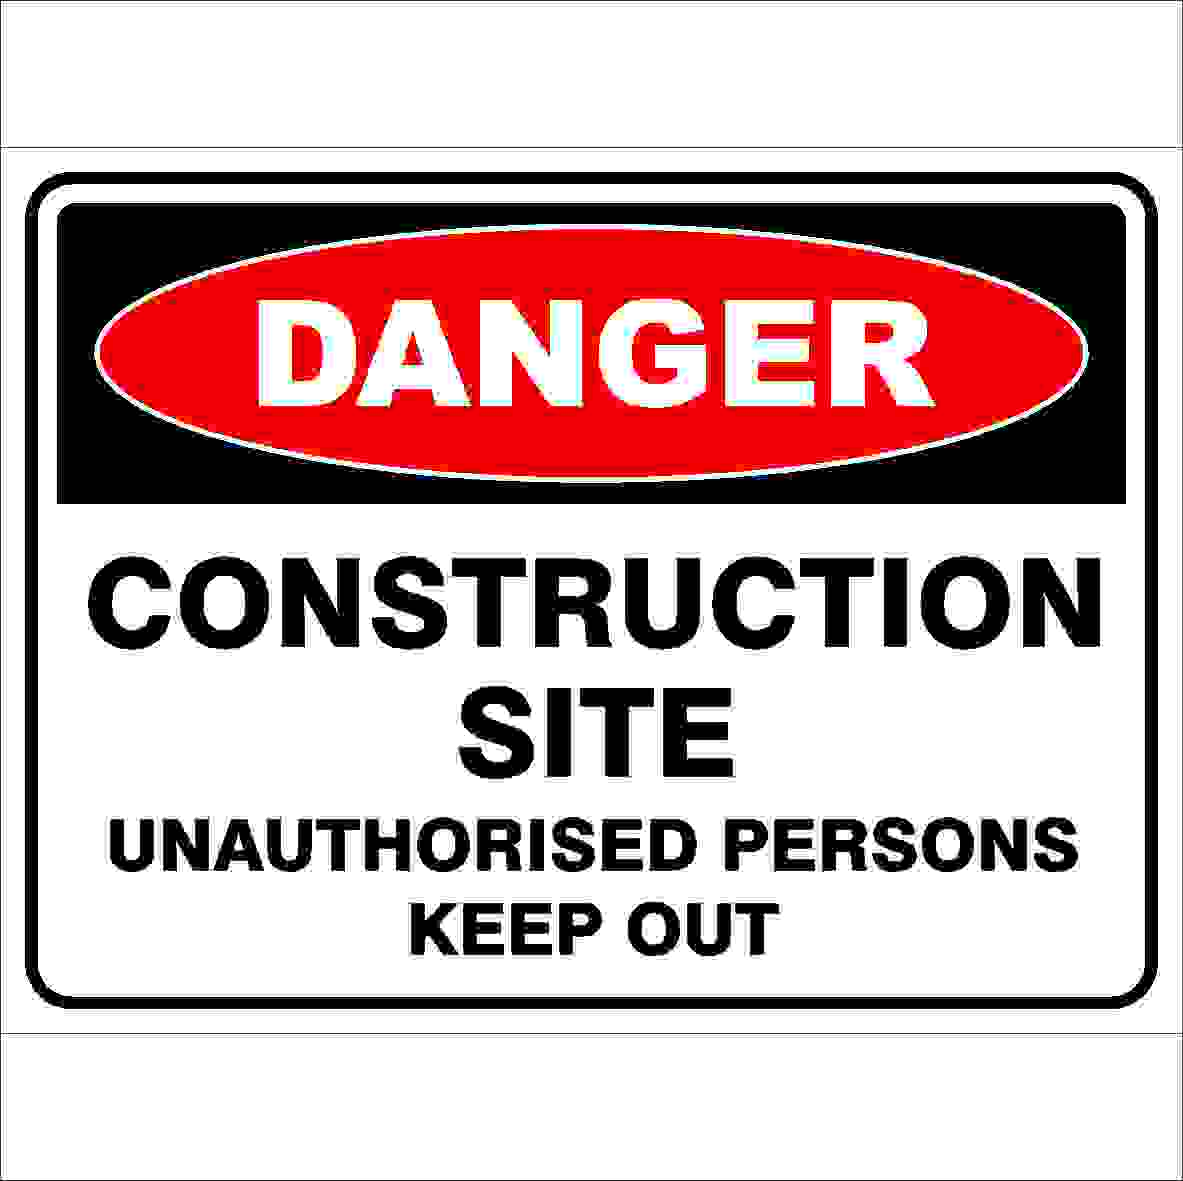 Danger Signs CONSTRUCTION SITE UNAUTHORISED PERSONS KEEP OUT